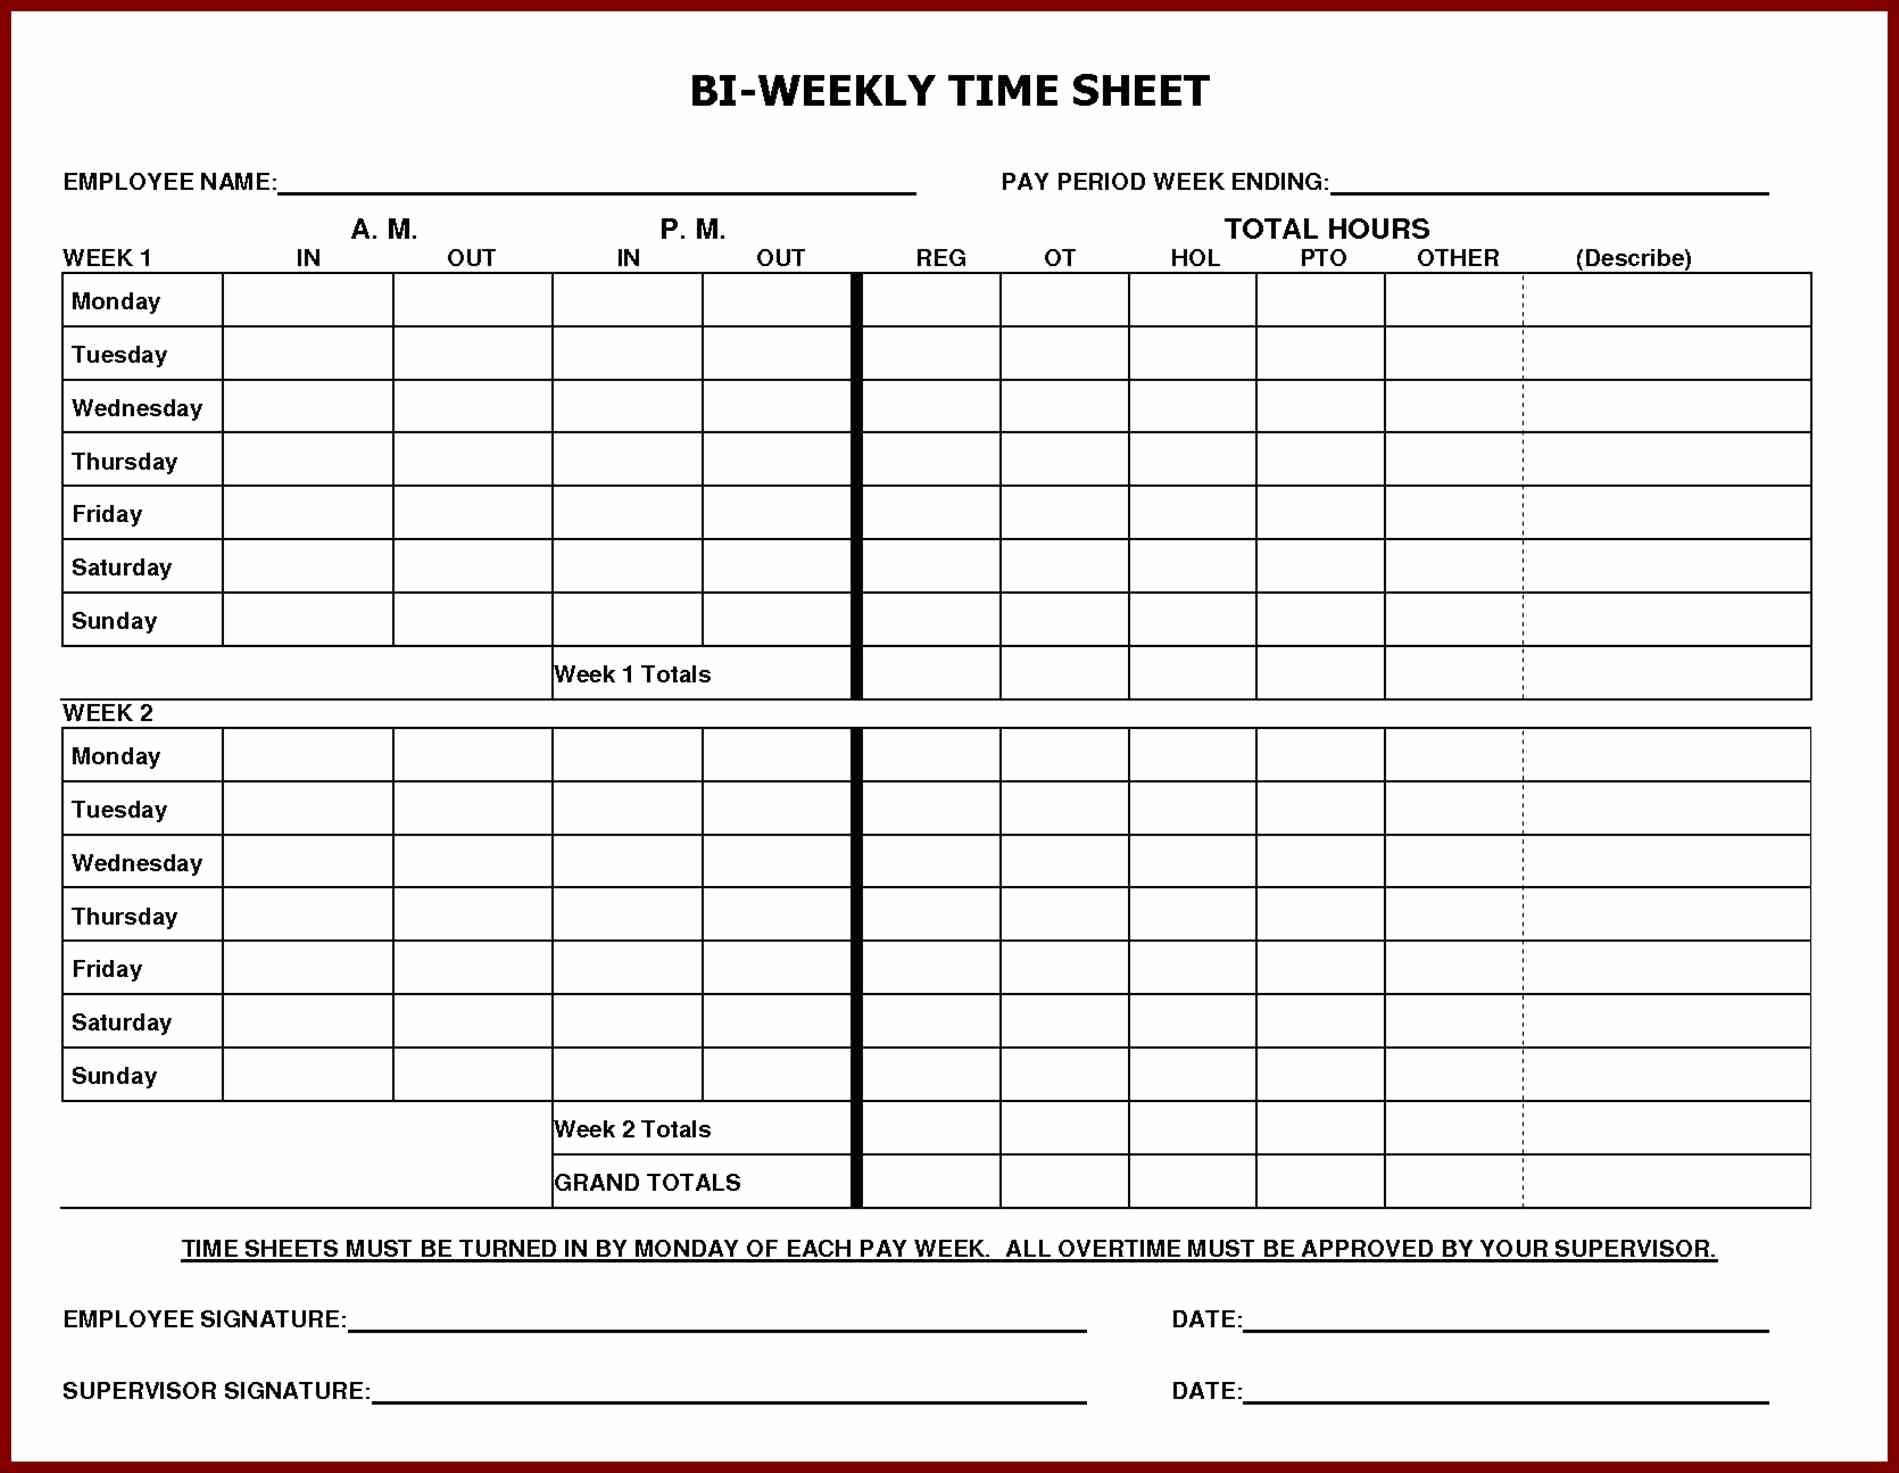 Clock In and Out Timesheet Luxury Daily Time Sheet Printable Printable 360 Degree